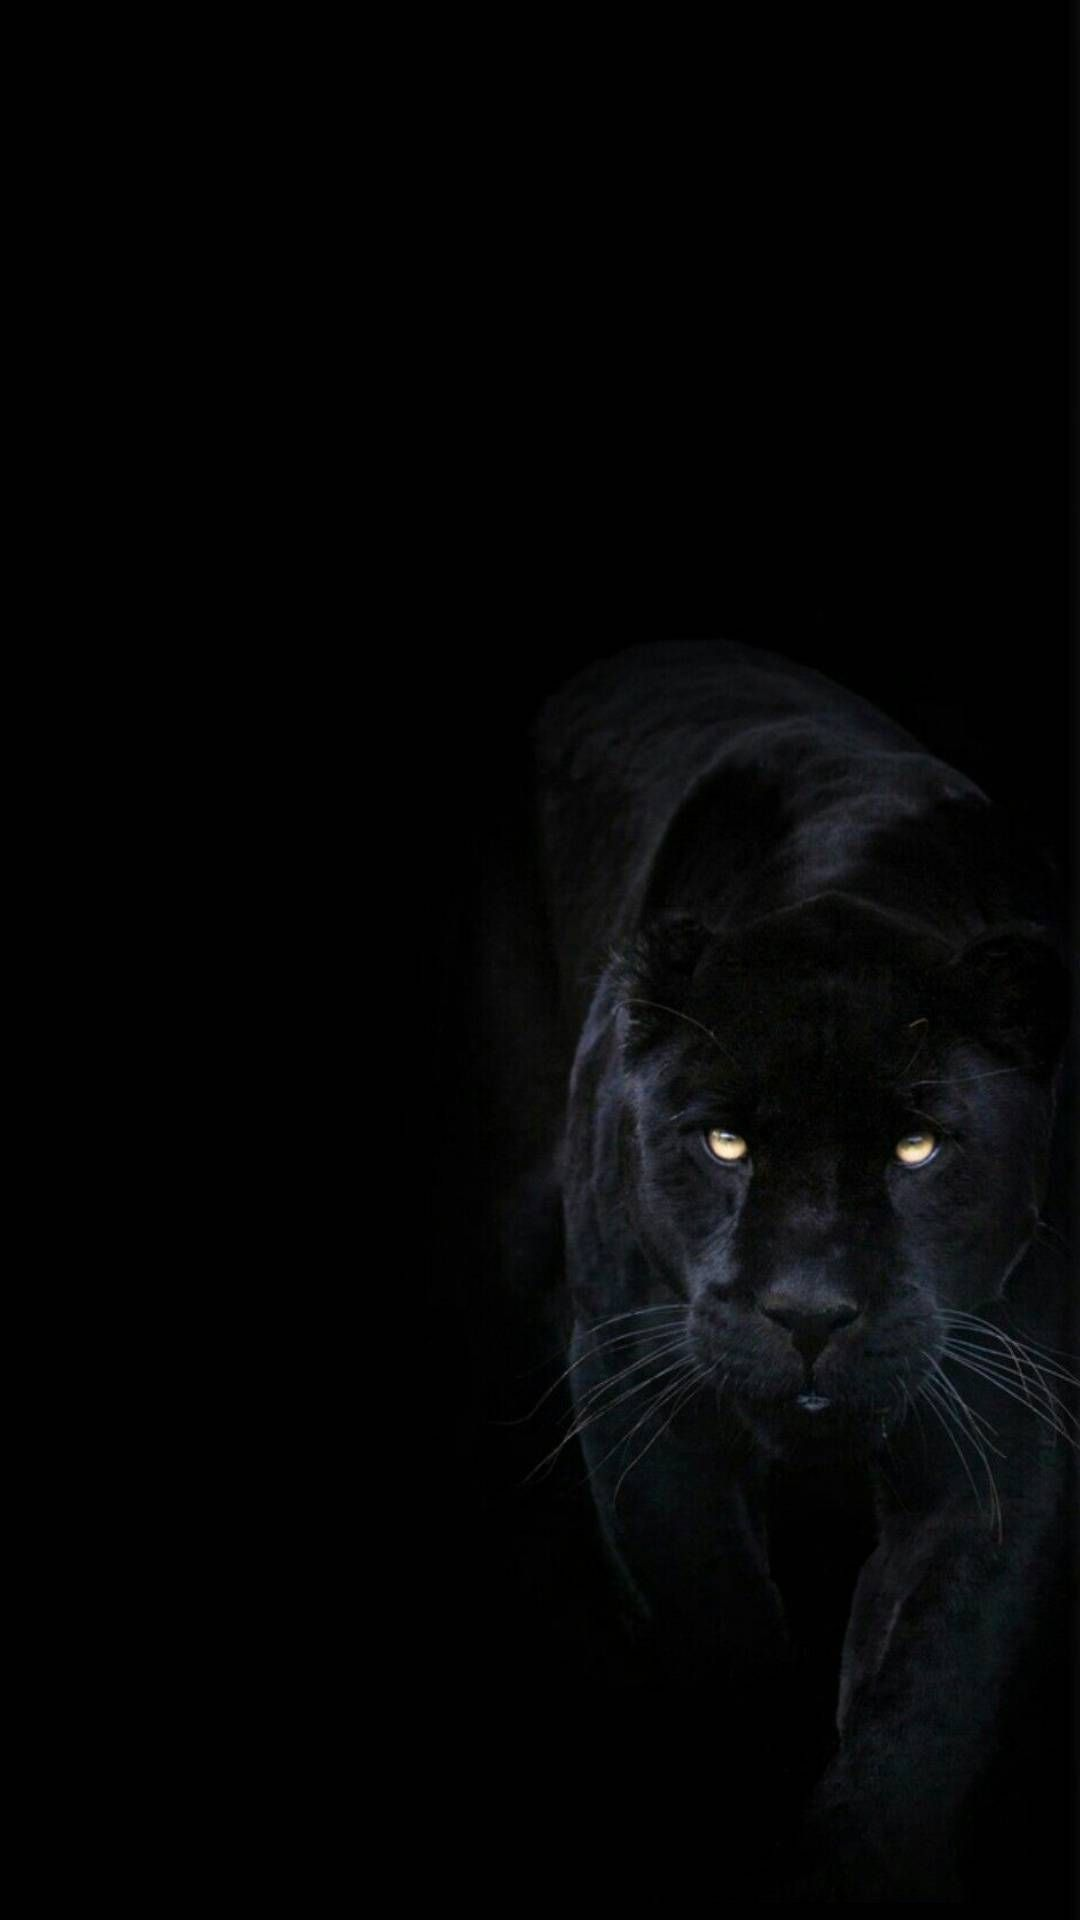 Animal Wallpaper With Black Background Http Wallpapersalbum Com Animal Wallpaper With Black Background Htm In 2020 Jaguar Animal Animal Wallpaper Black Jaguar Animal